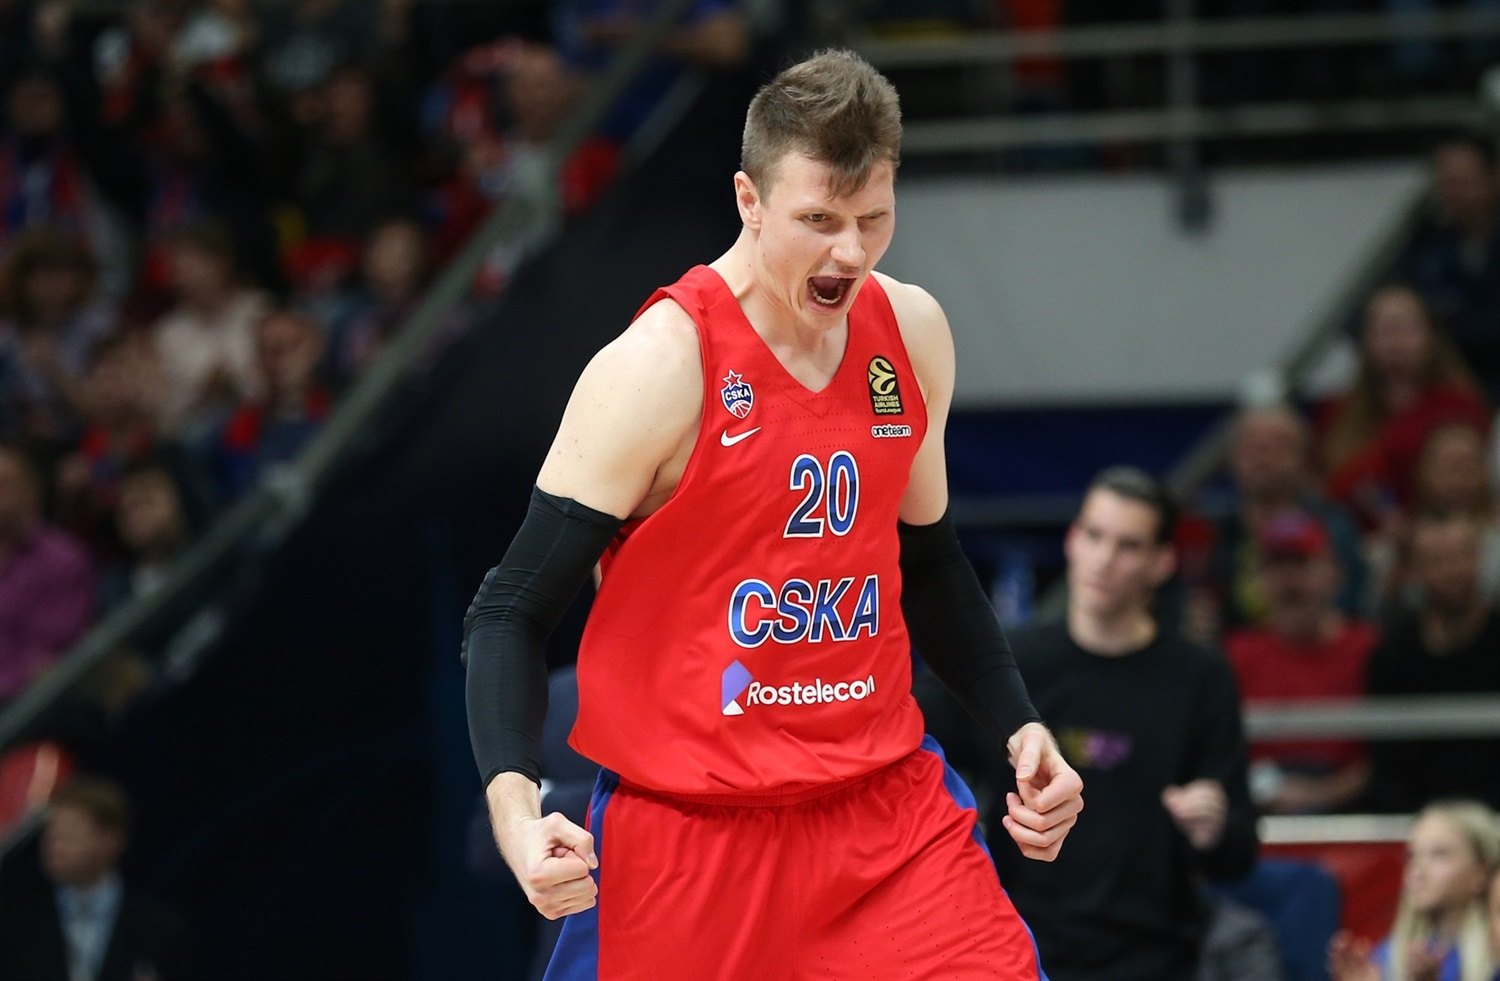 Andrey Vorontsevich - CSKA Moscow - EB19